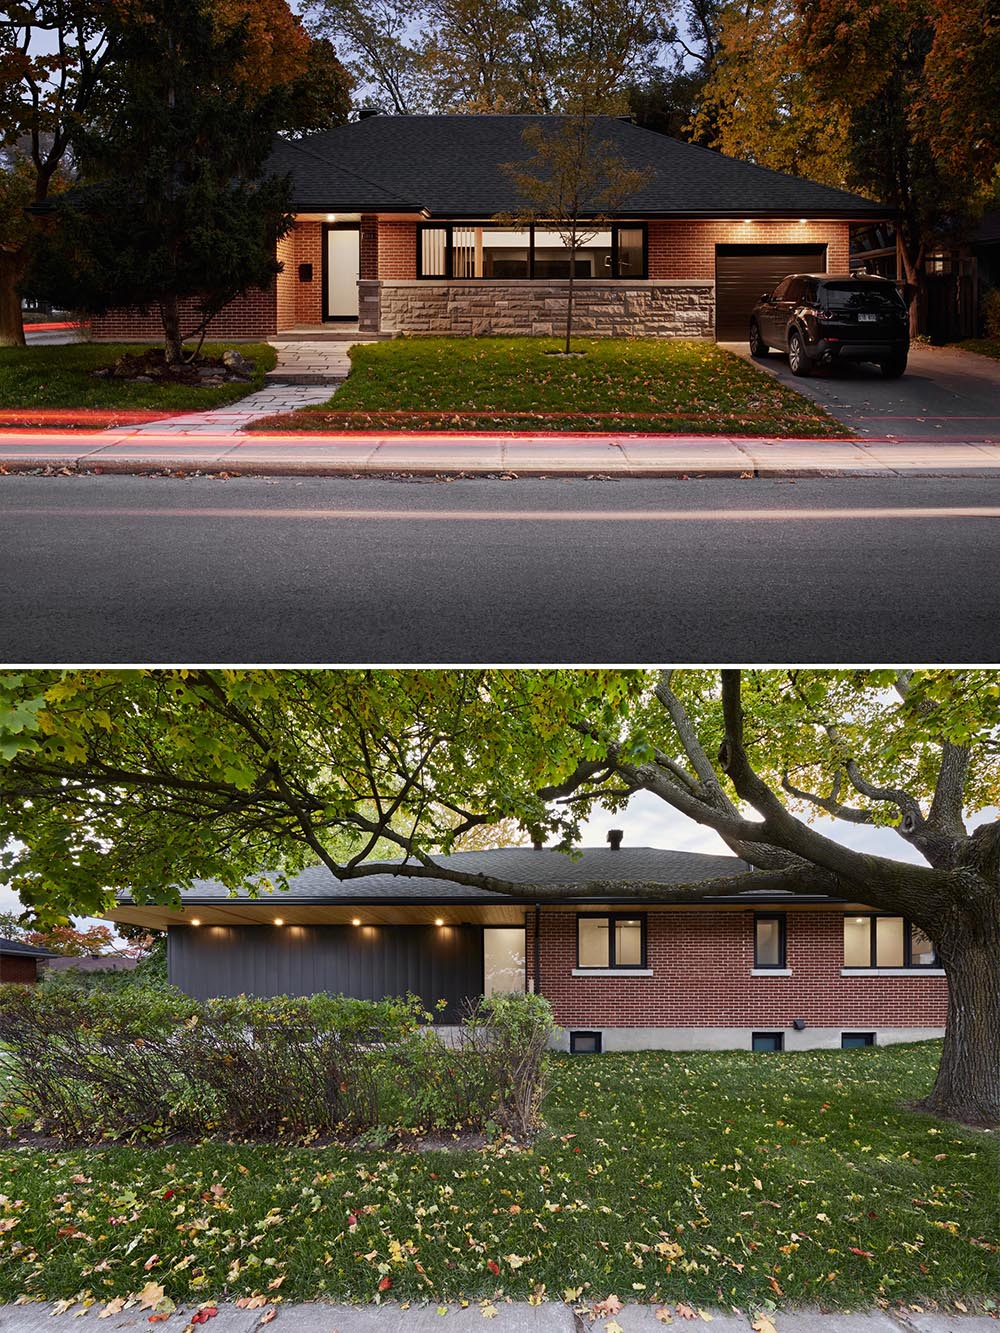 This remodeled bungalow, located on a corner lot and surrounded by mature trees, has a brick and stone facade with black accents.